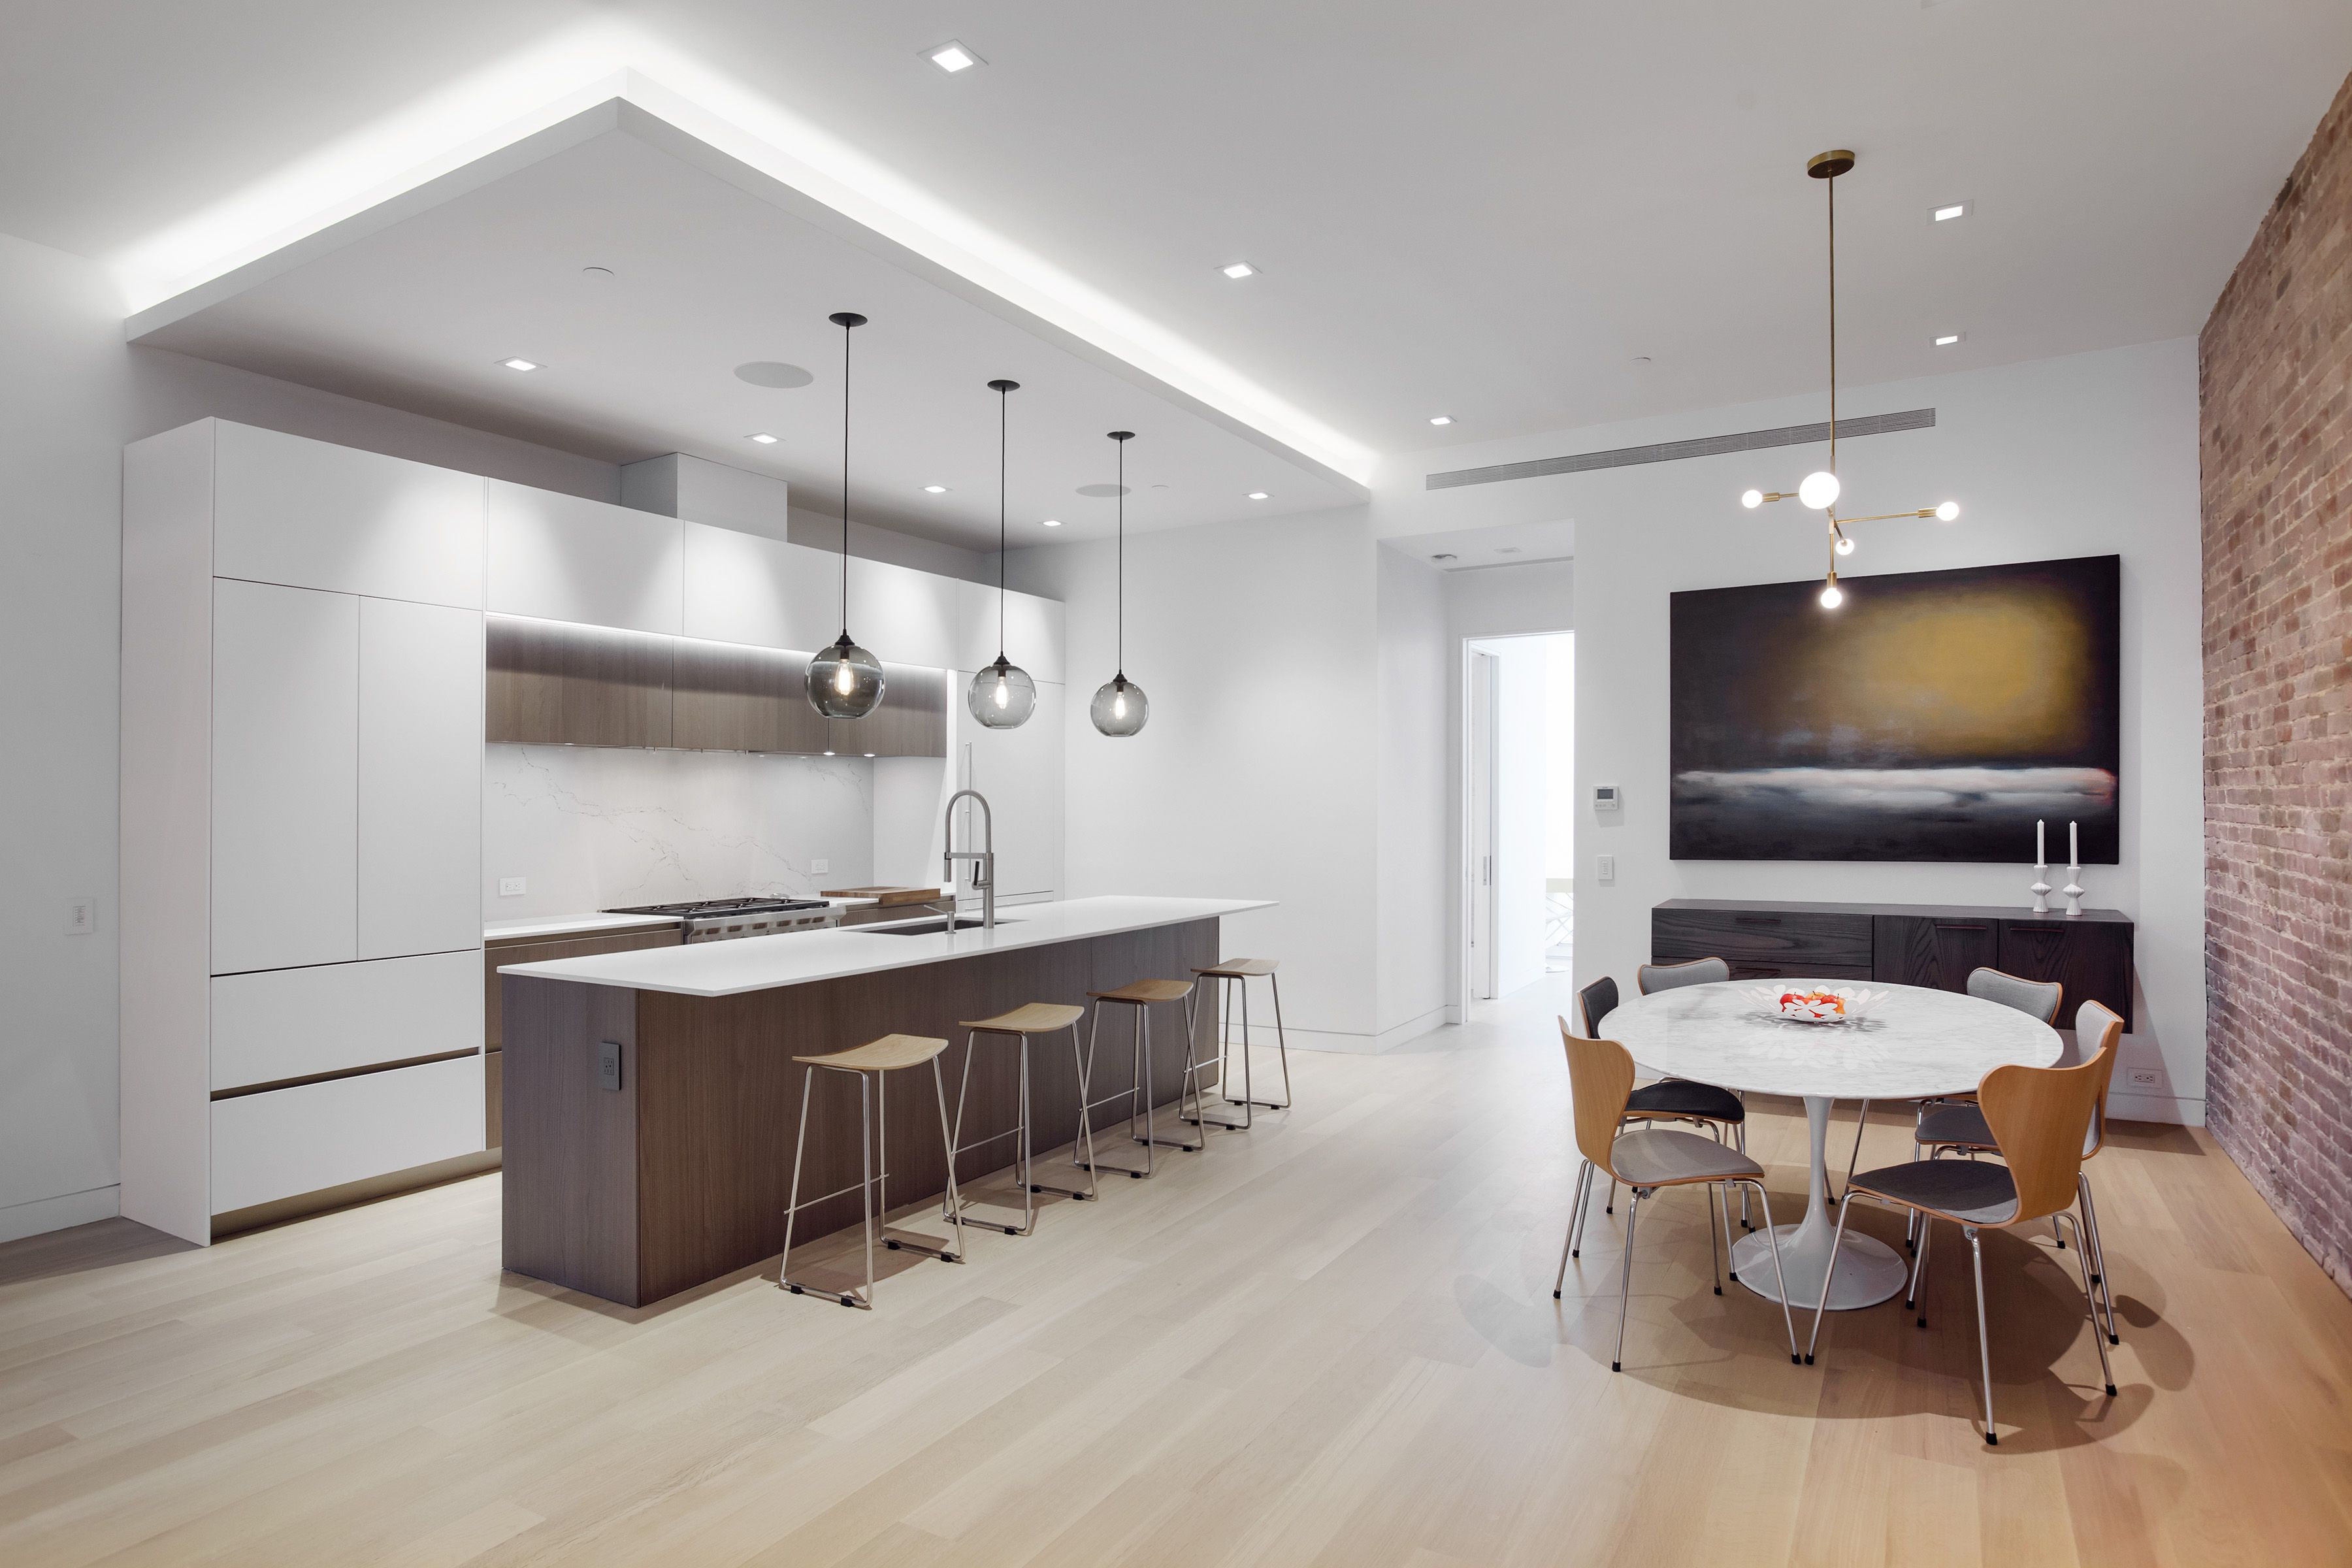 This Superior High Gloss Kitchen Inspires Us Design Your Home